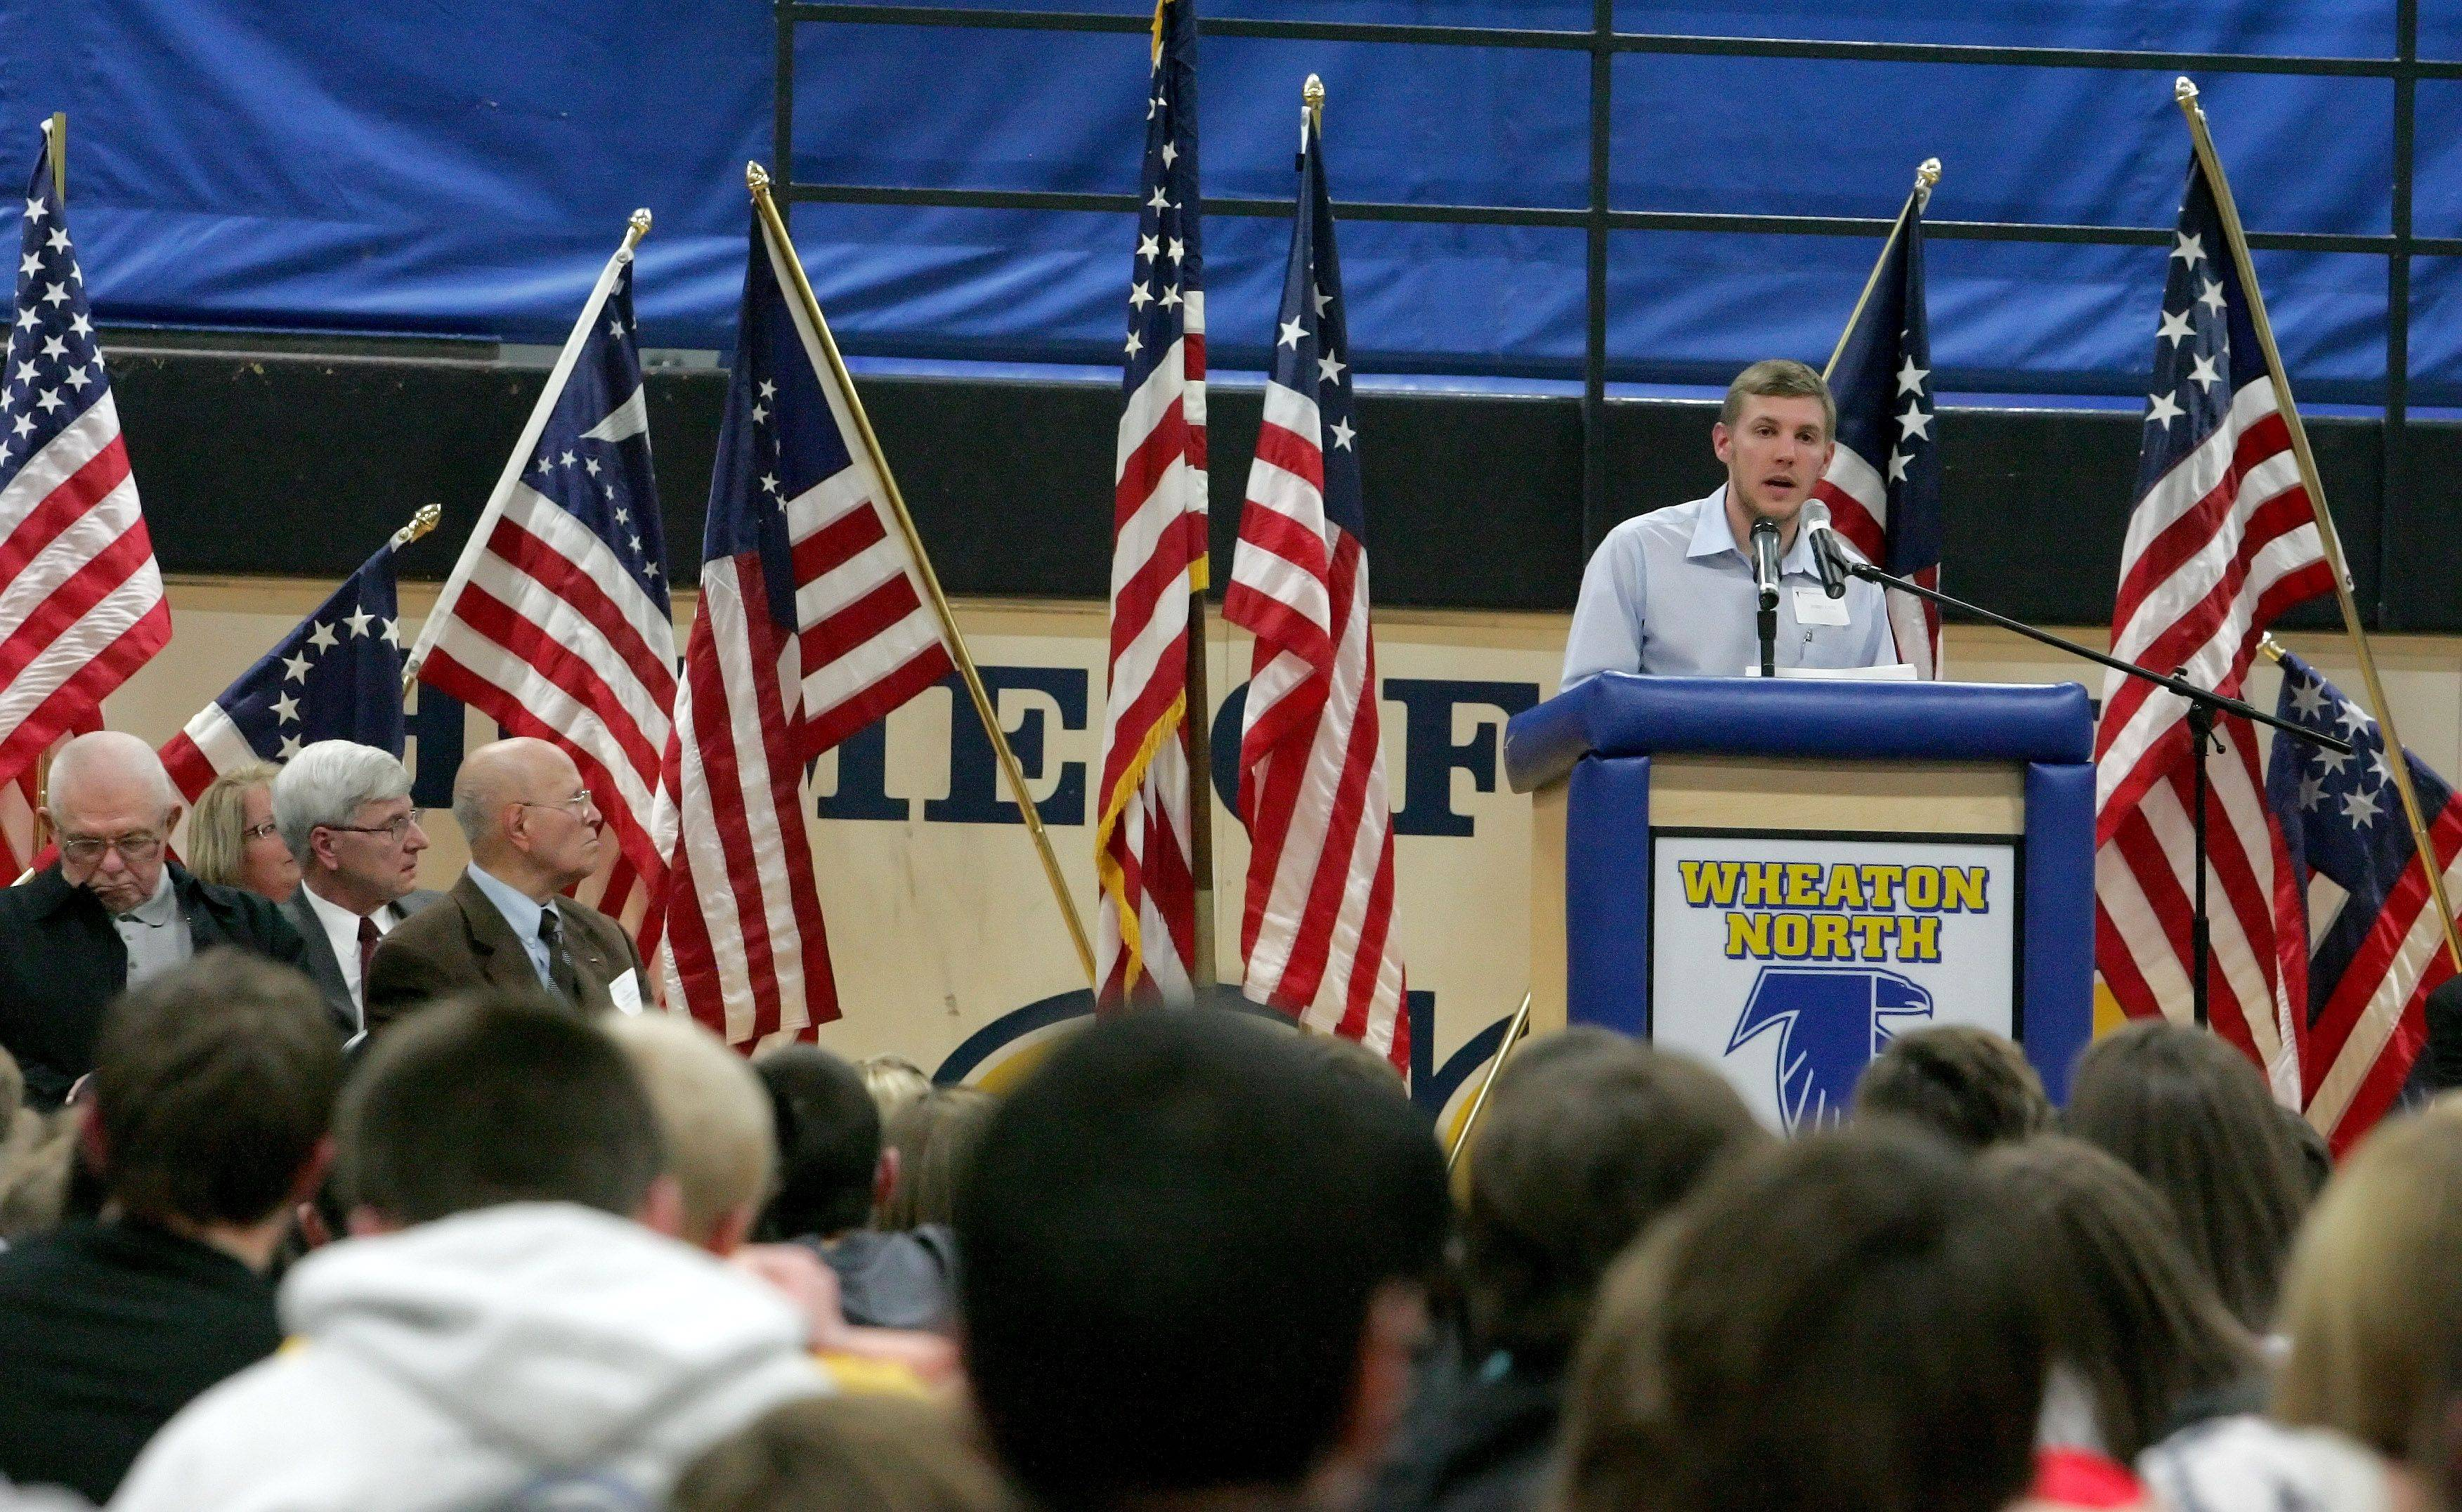 Bobby Kaye speaks to students and veterans during a Veterans Day event honoring his friend Medal of Honor recipient Rob Miller at Wheaton North High School on Thursday. Kaye is a 2002 graduate of Wheaton Warrenville South and has also served two tours of duty in Iraq.